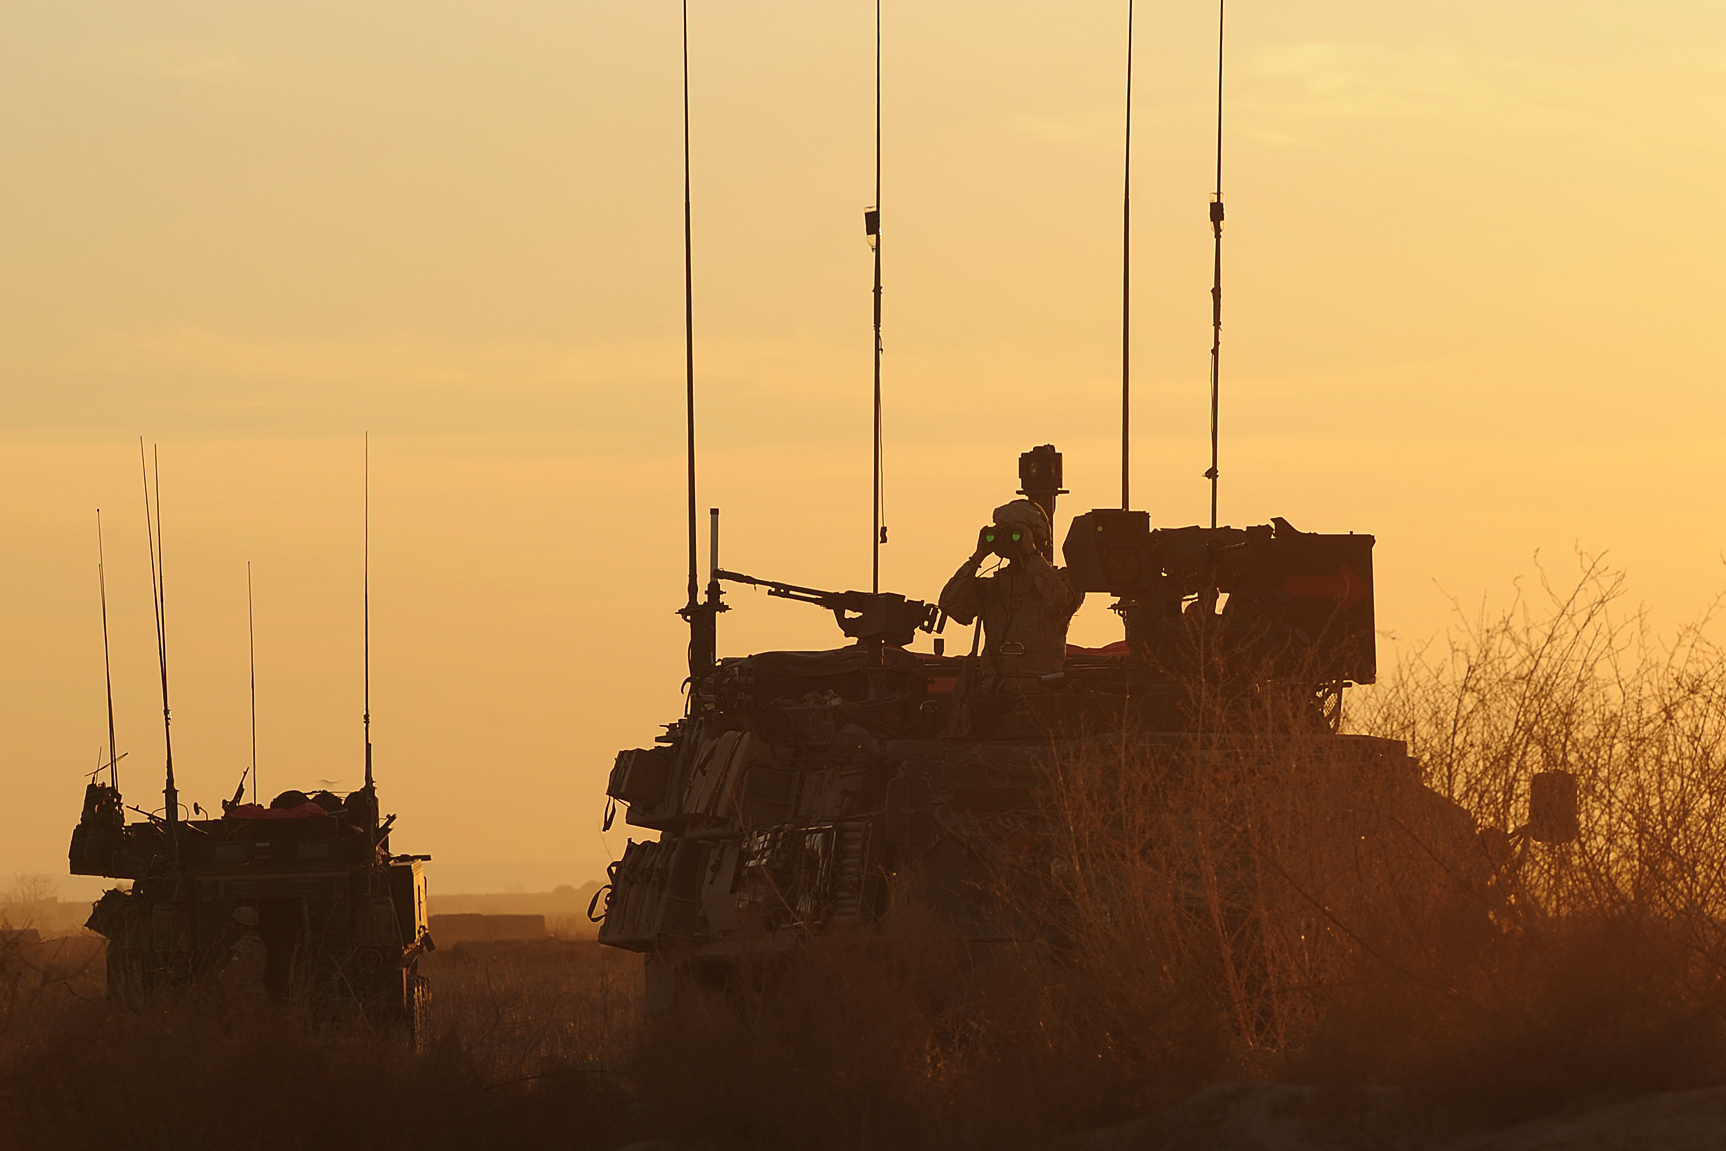 At sunset a convoy of Canadian Light Armored Vehicles over-watches the area near Khadan Village, Afghanistan, Jan. 25